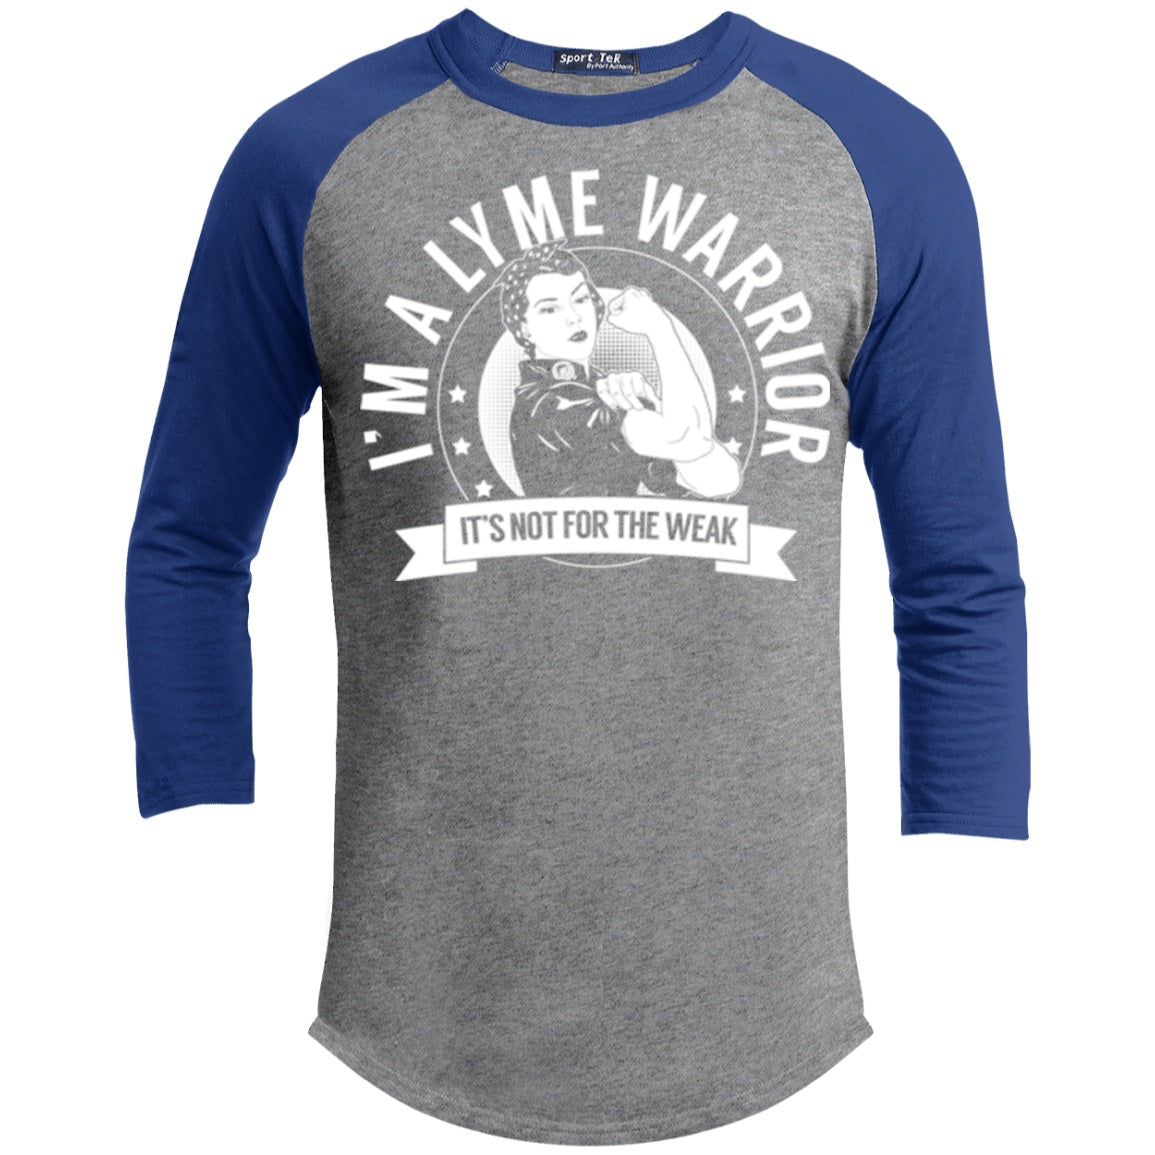 Lyme Disease - Lyme Warrior Not For The Weak Baseball Shirt - The Unchargeables